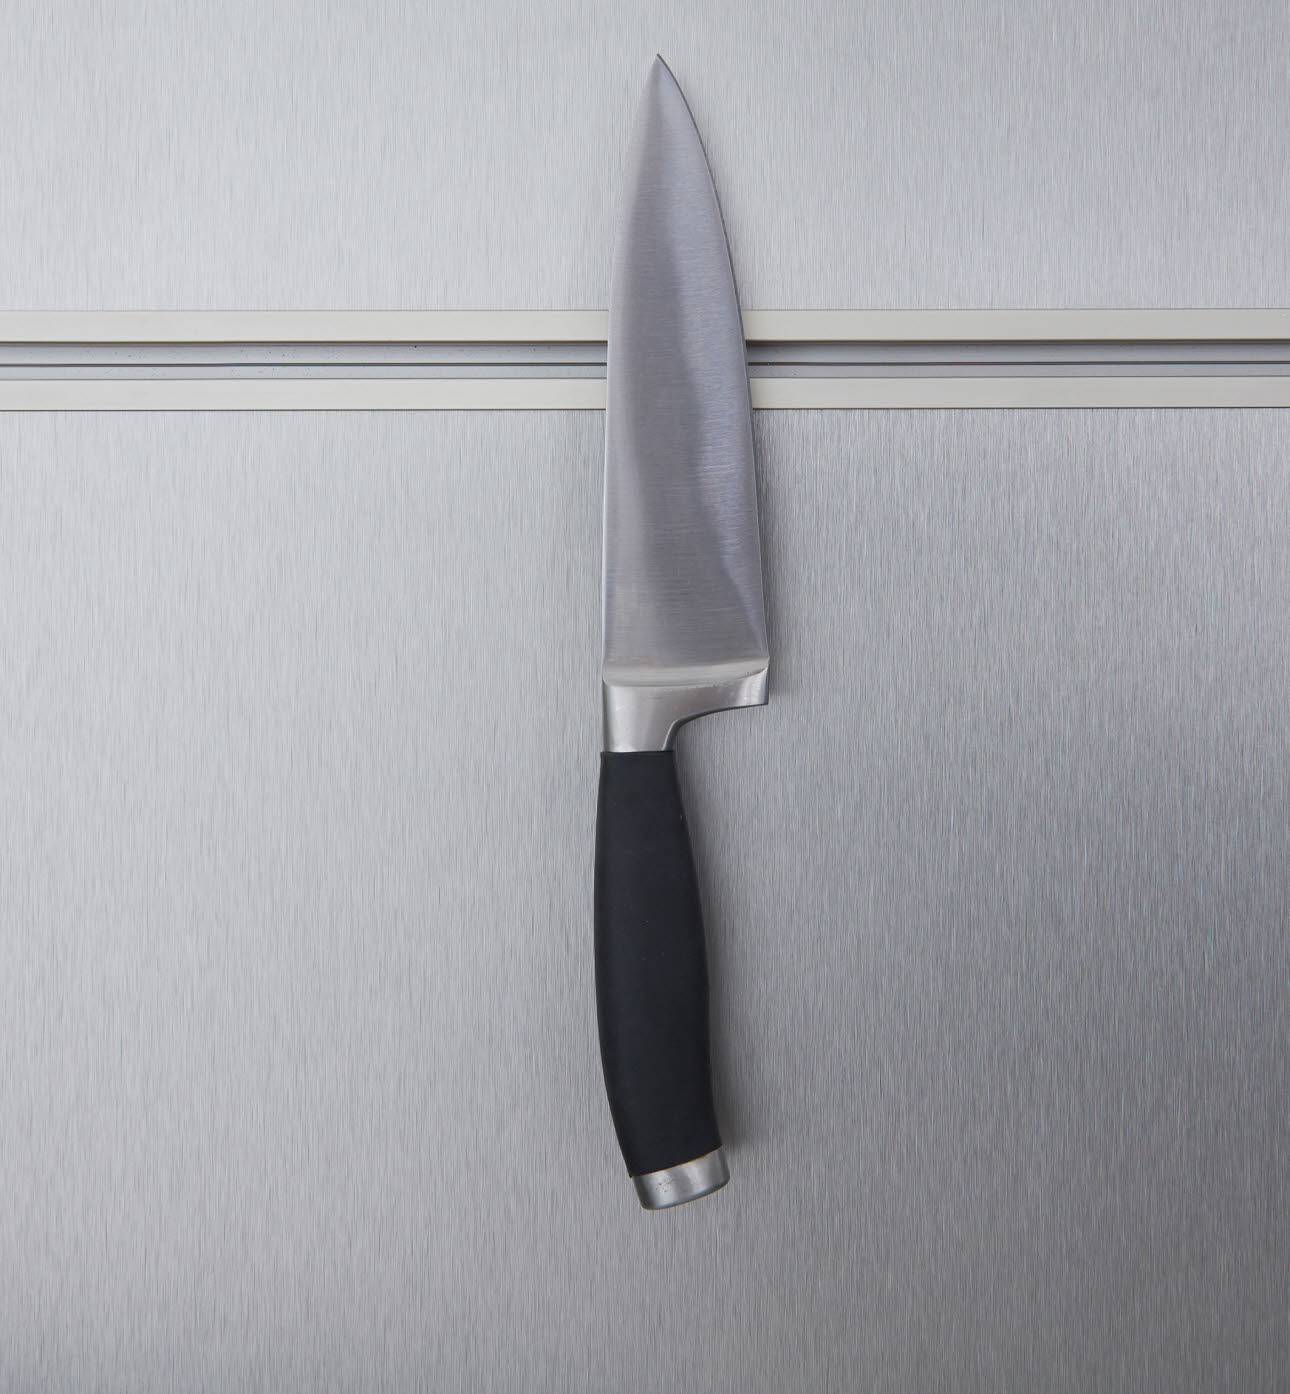 Magnetic bar - knife 2